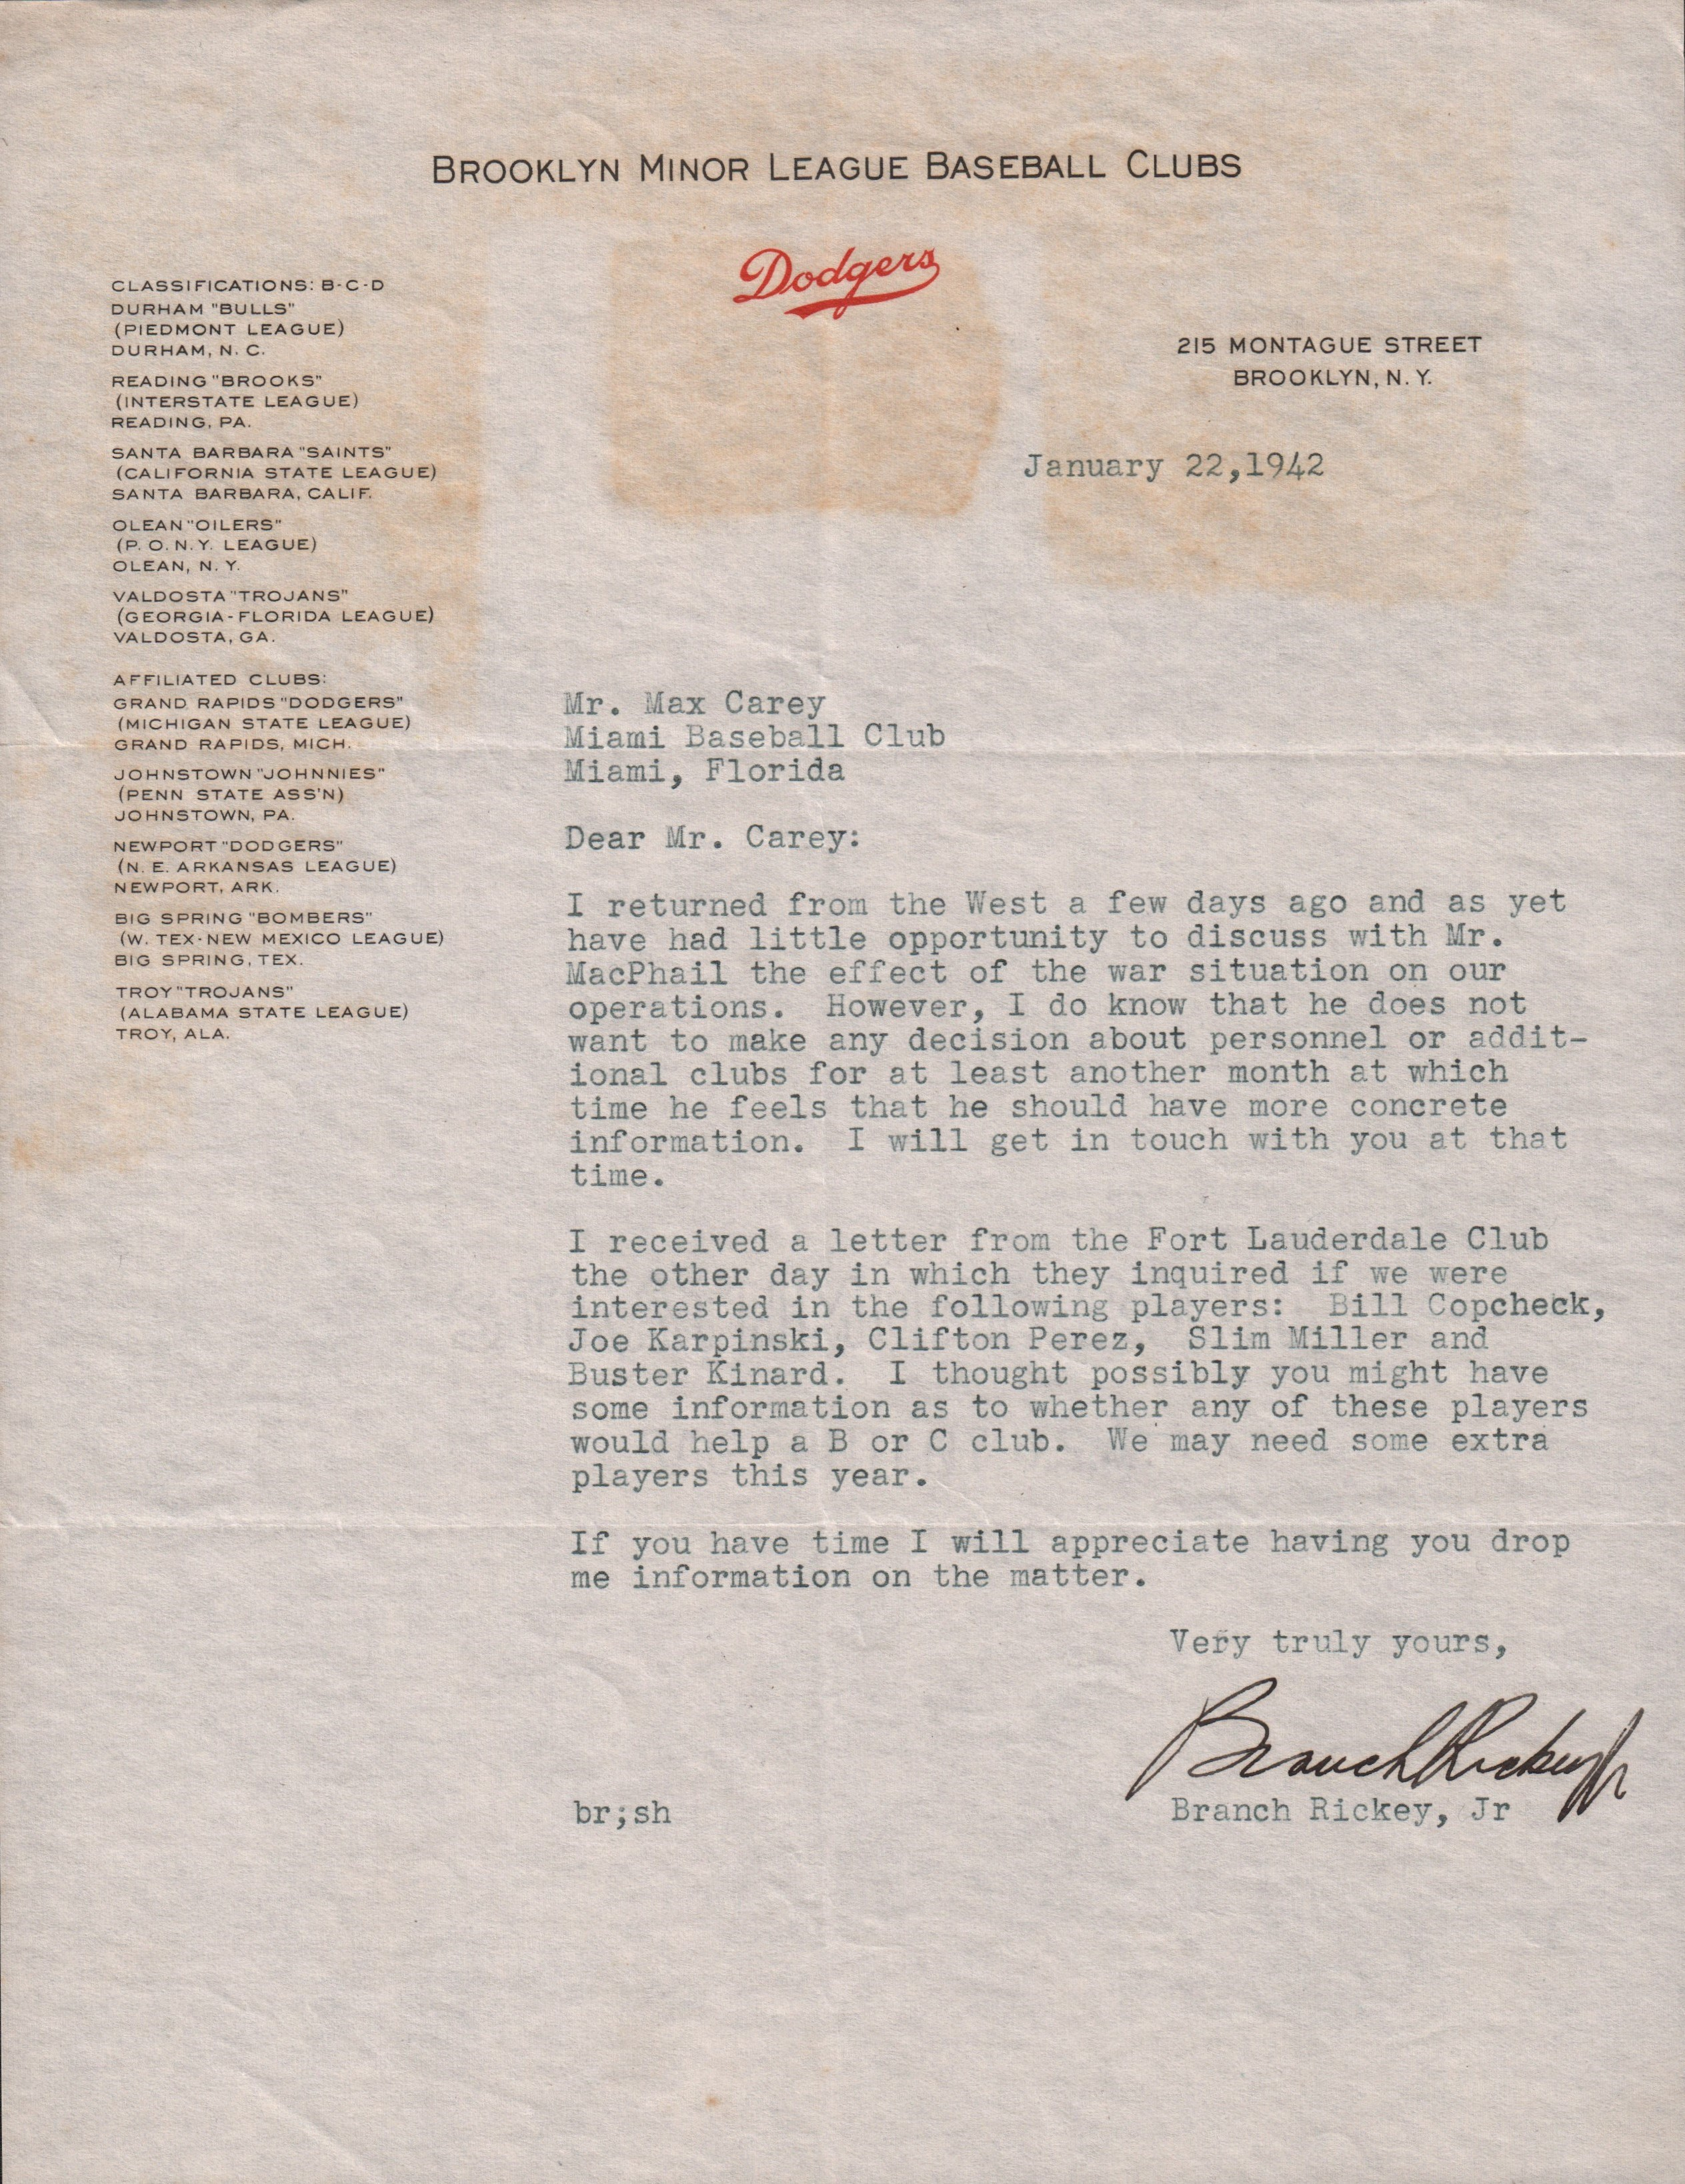 Two Branch Rickey Jr. Letters to Max Carey